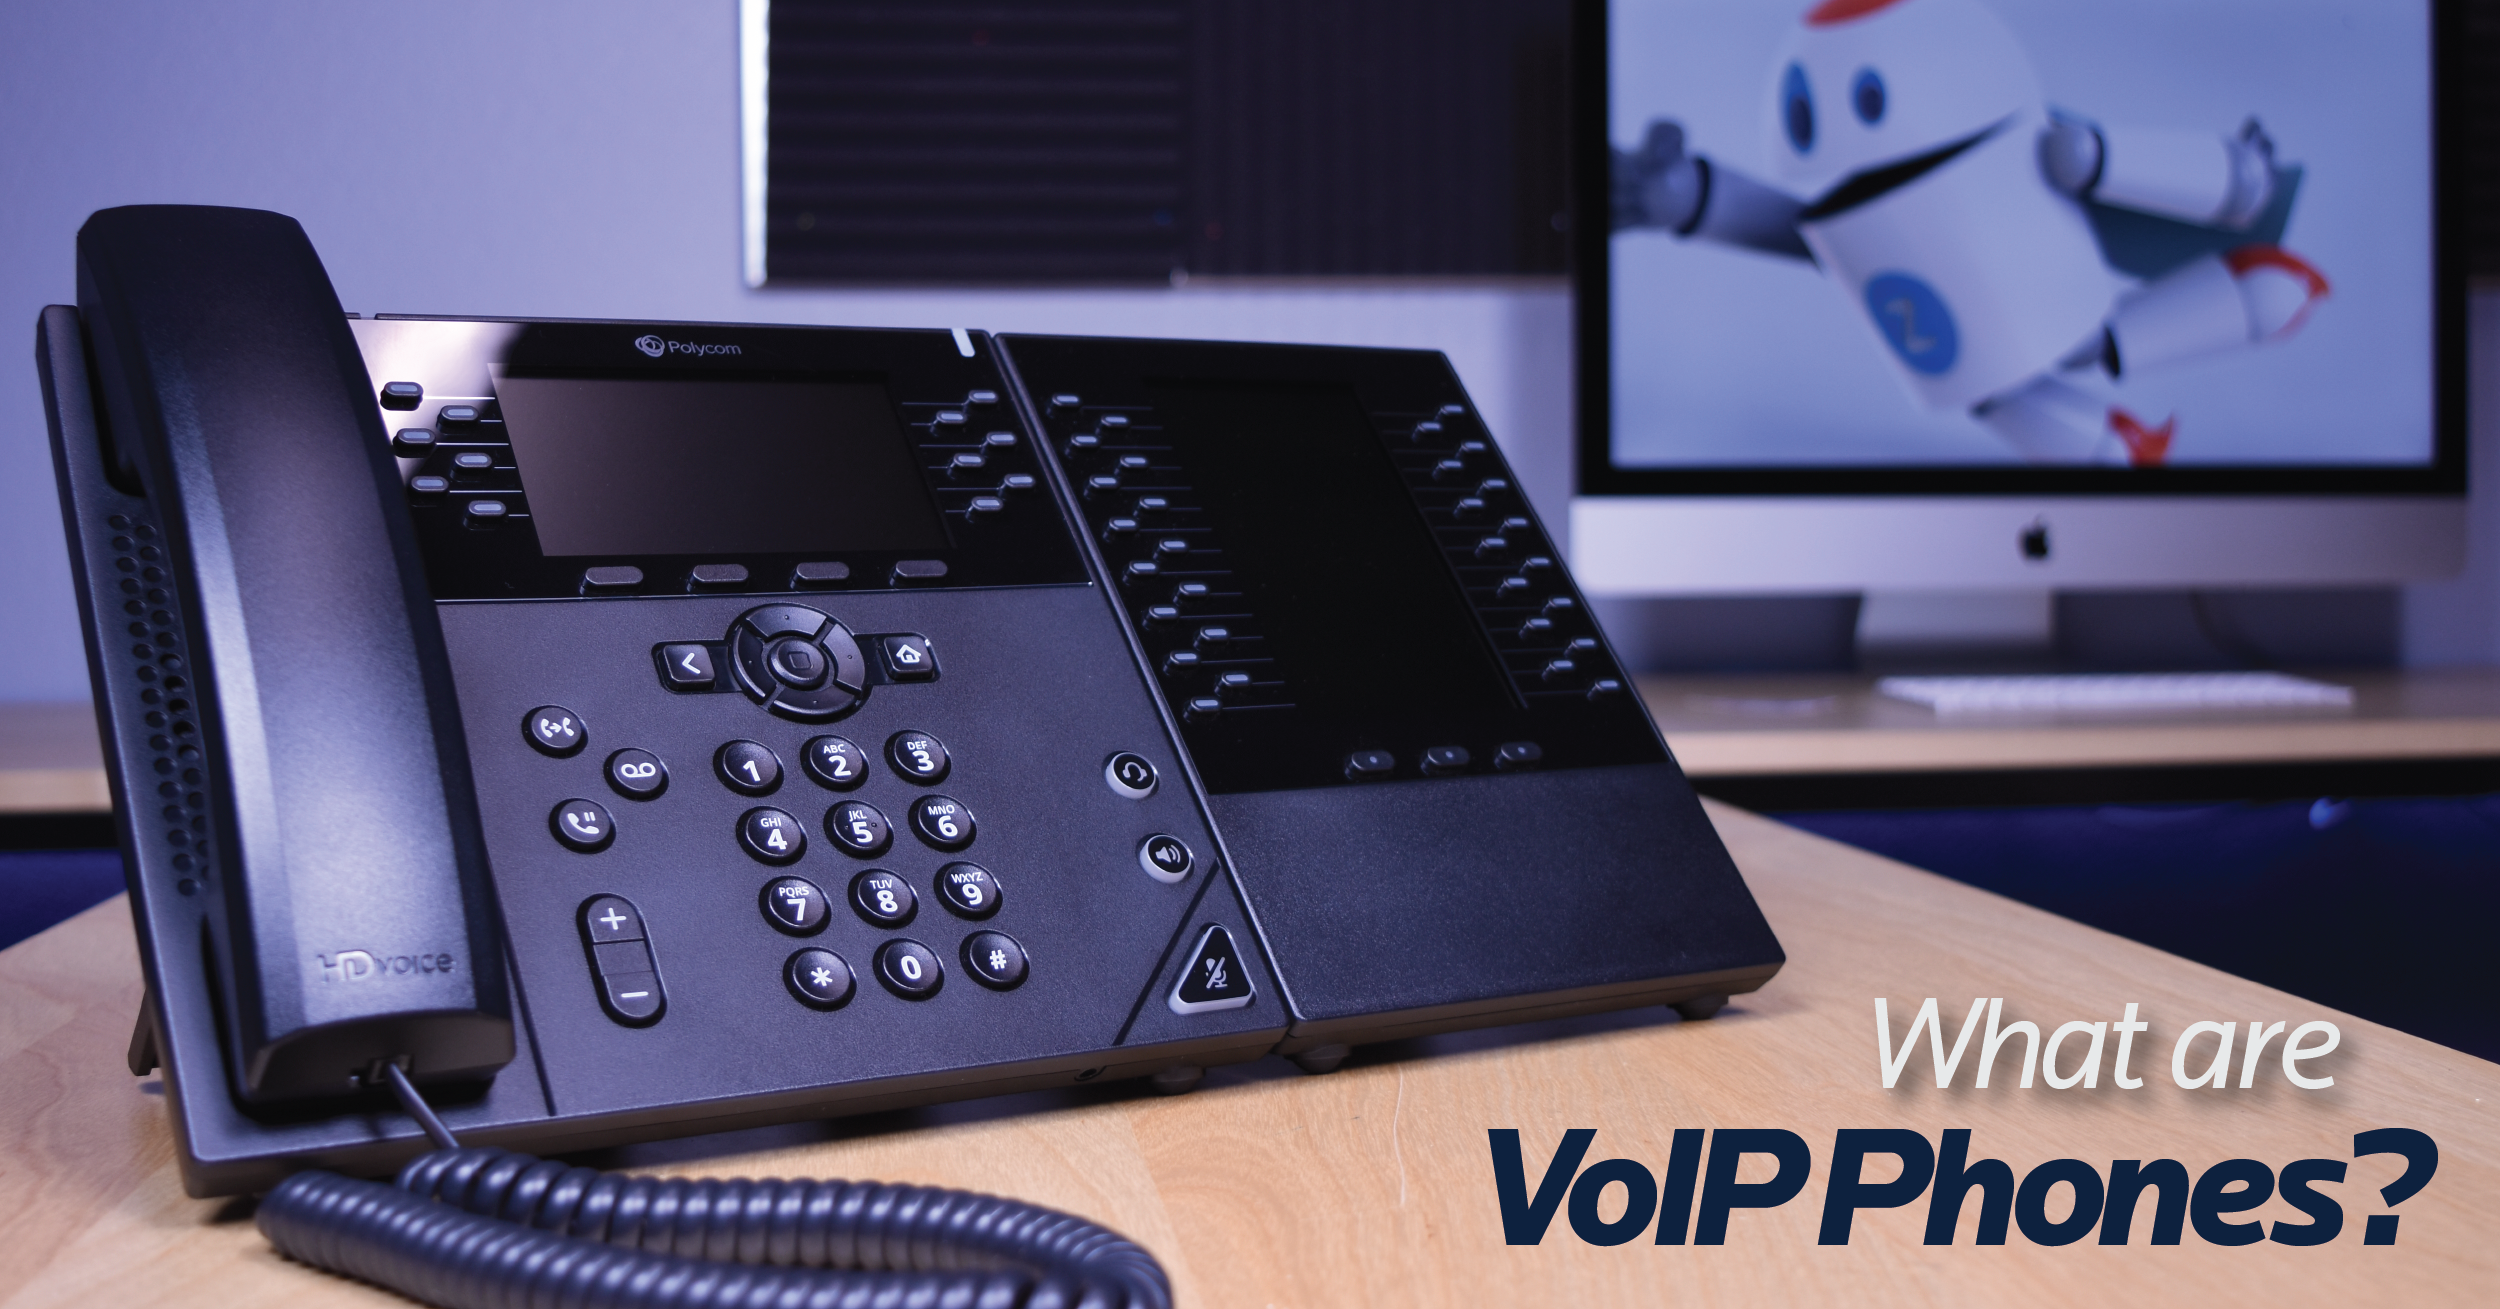 What is VoIP? What are VoIP Phones?